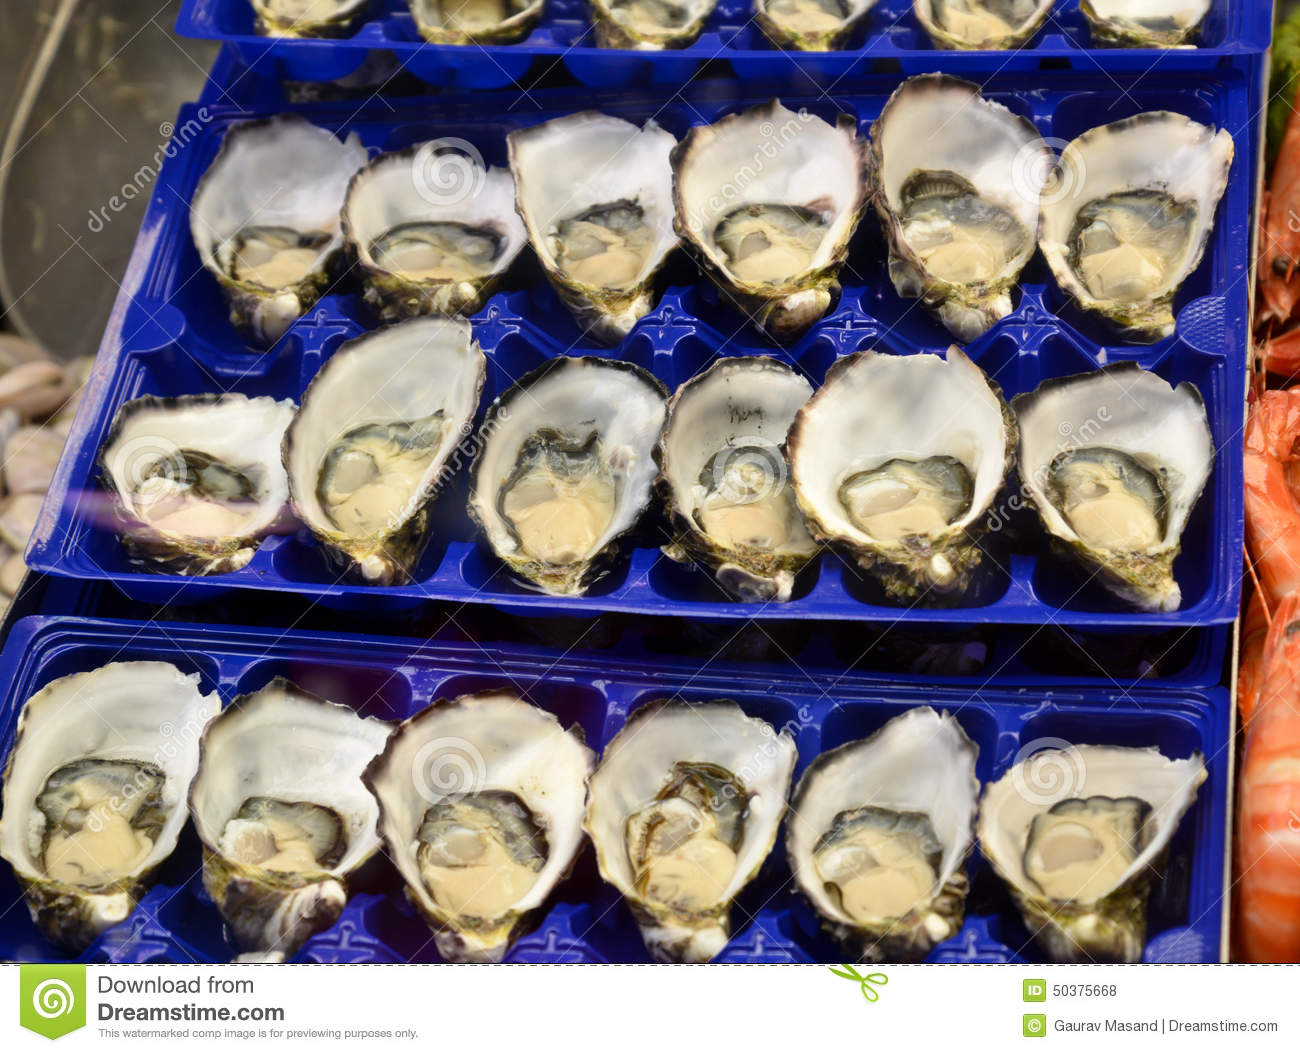 Fresh Seafood Oysters Being Sold In Victoria Market Stock